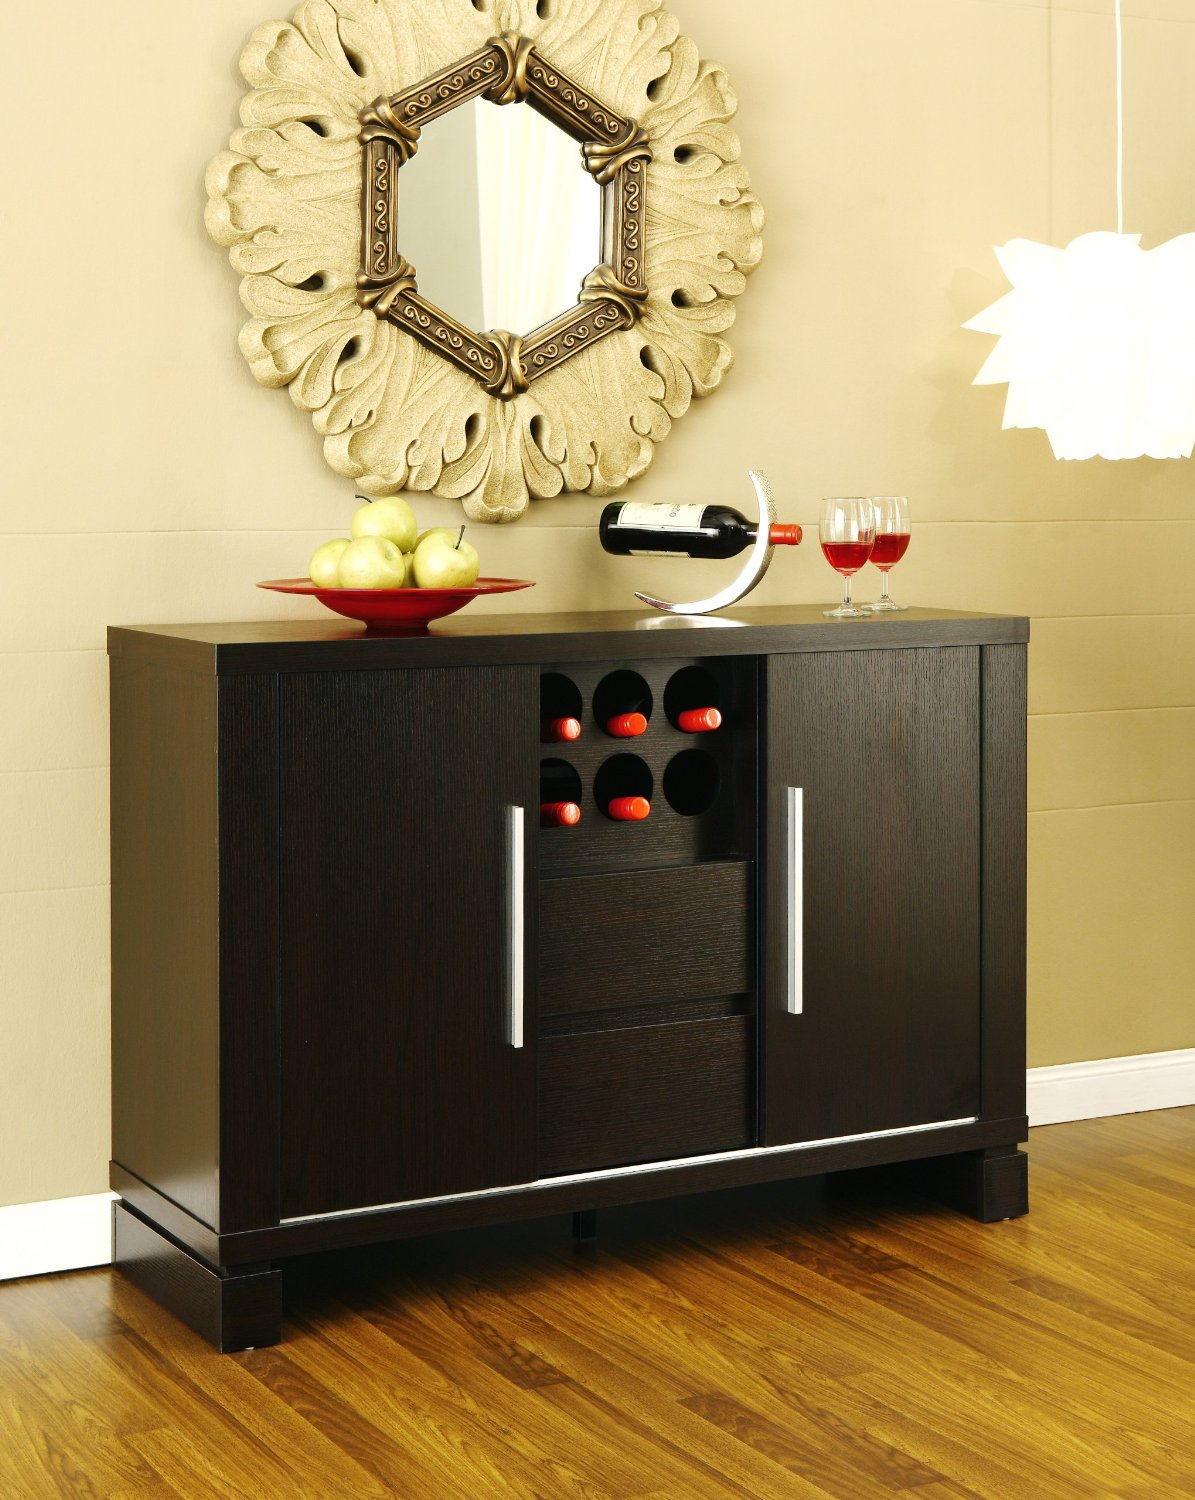 Smaller Black Wood Kitchen Sideboard With Unique Storage Design Red Plate For Fruits A Metal Wine